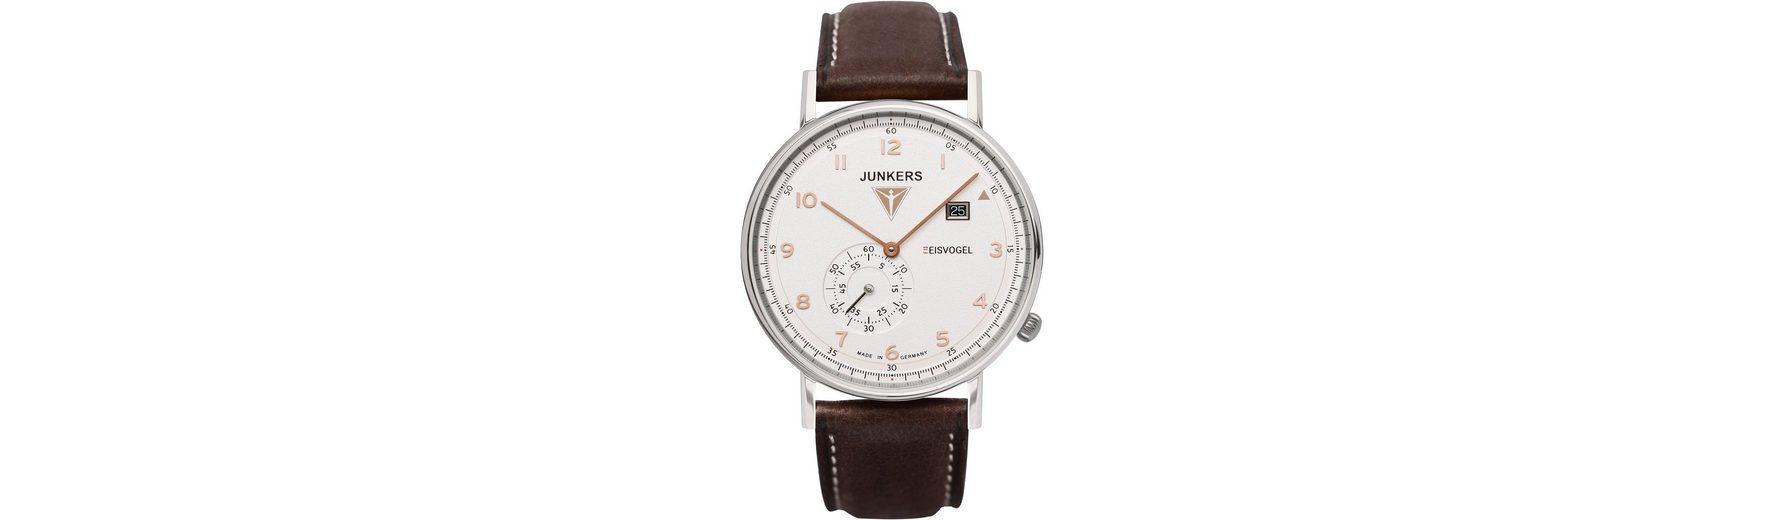 Junkers-Uhren Quarzuhr »EISVOGEL F13, 6730-4« Made in Germany